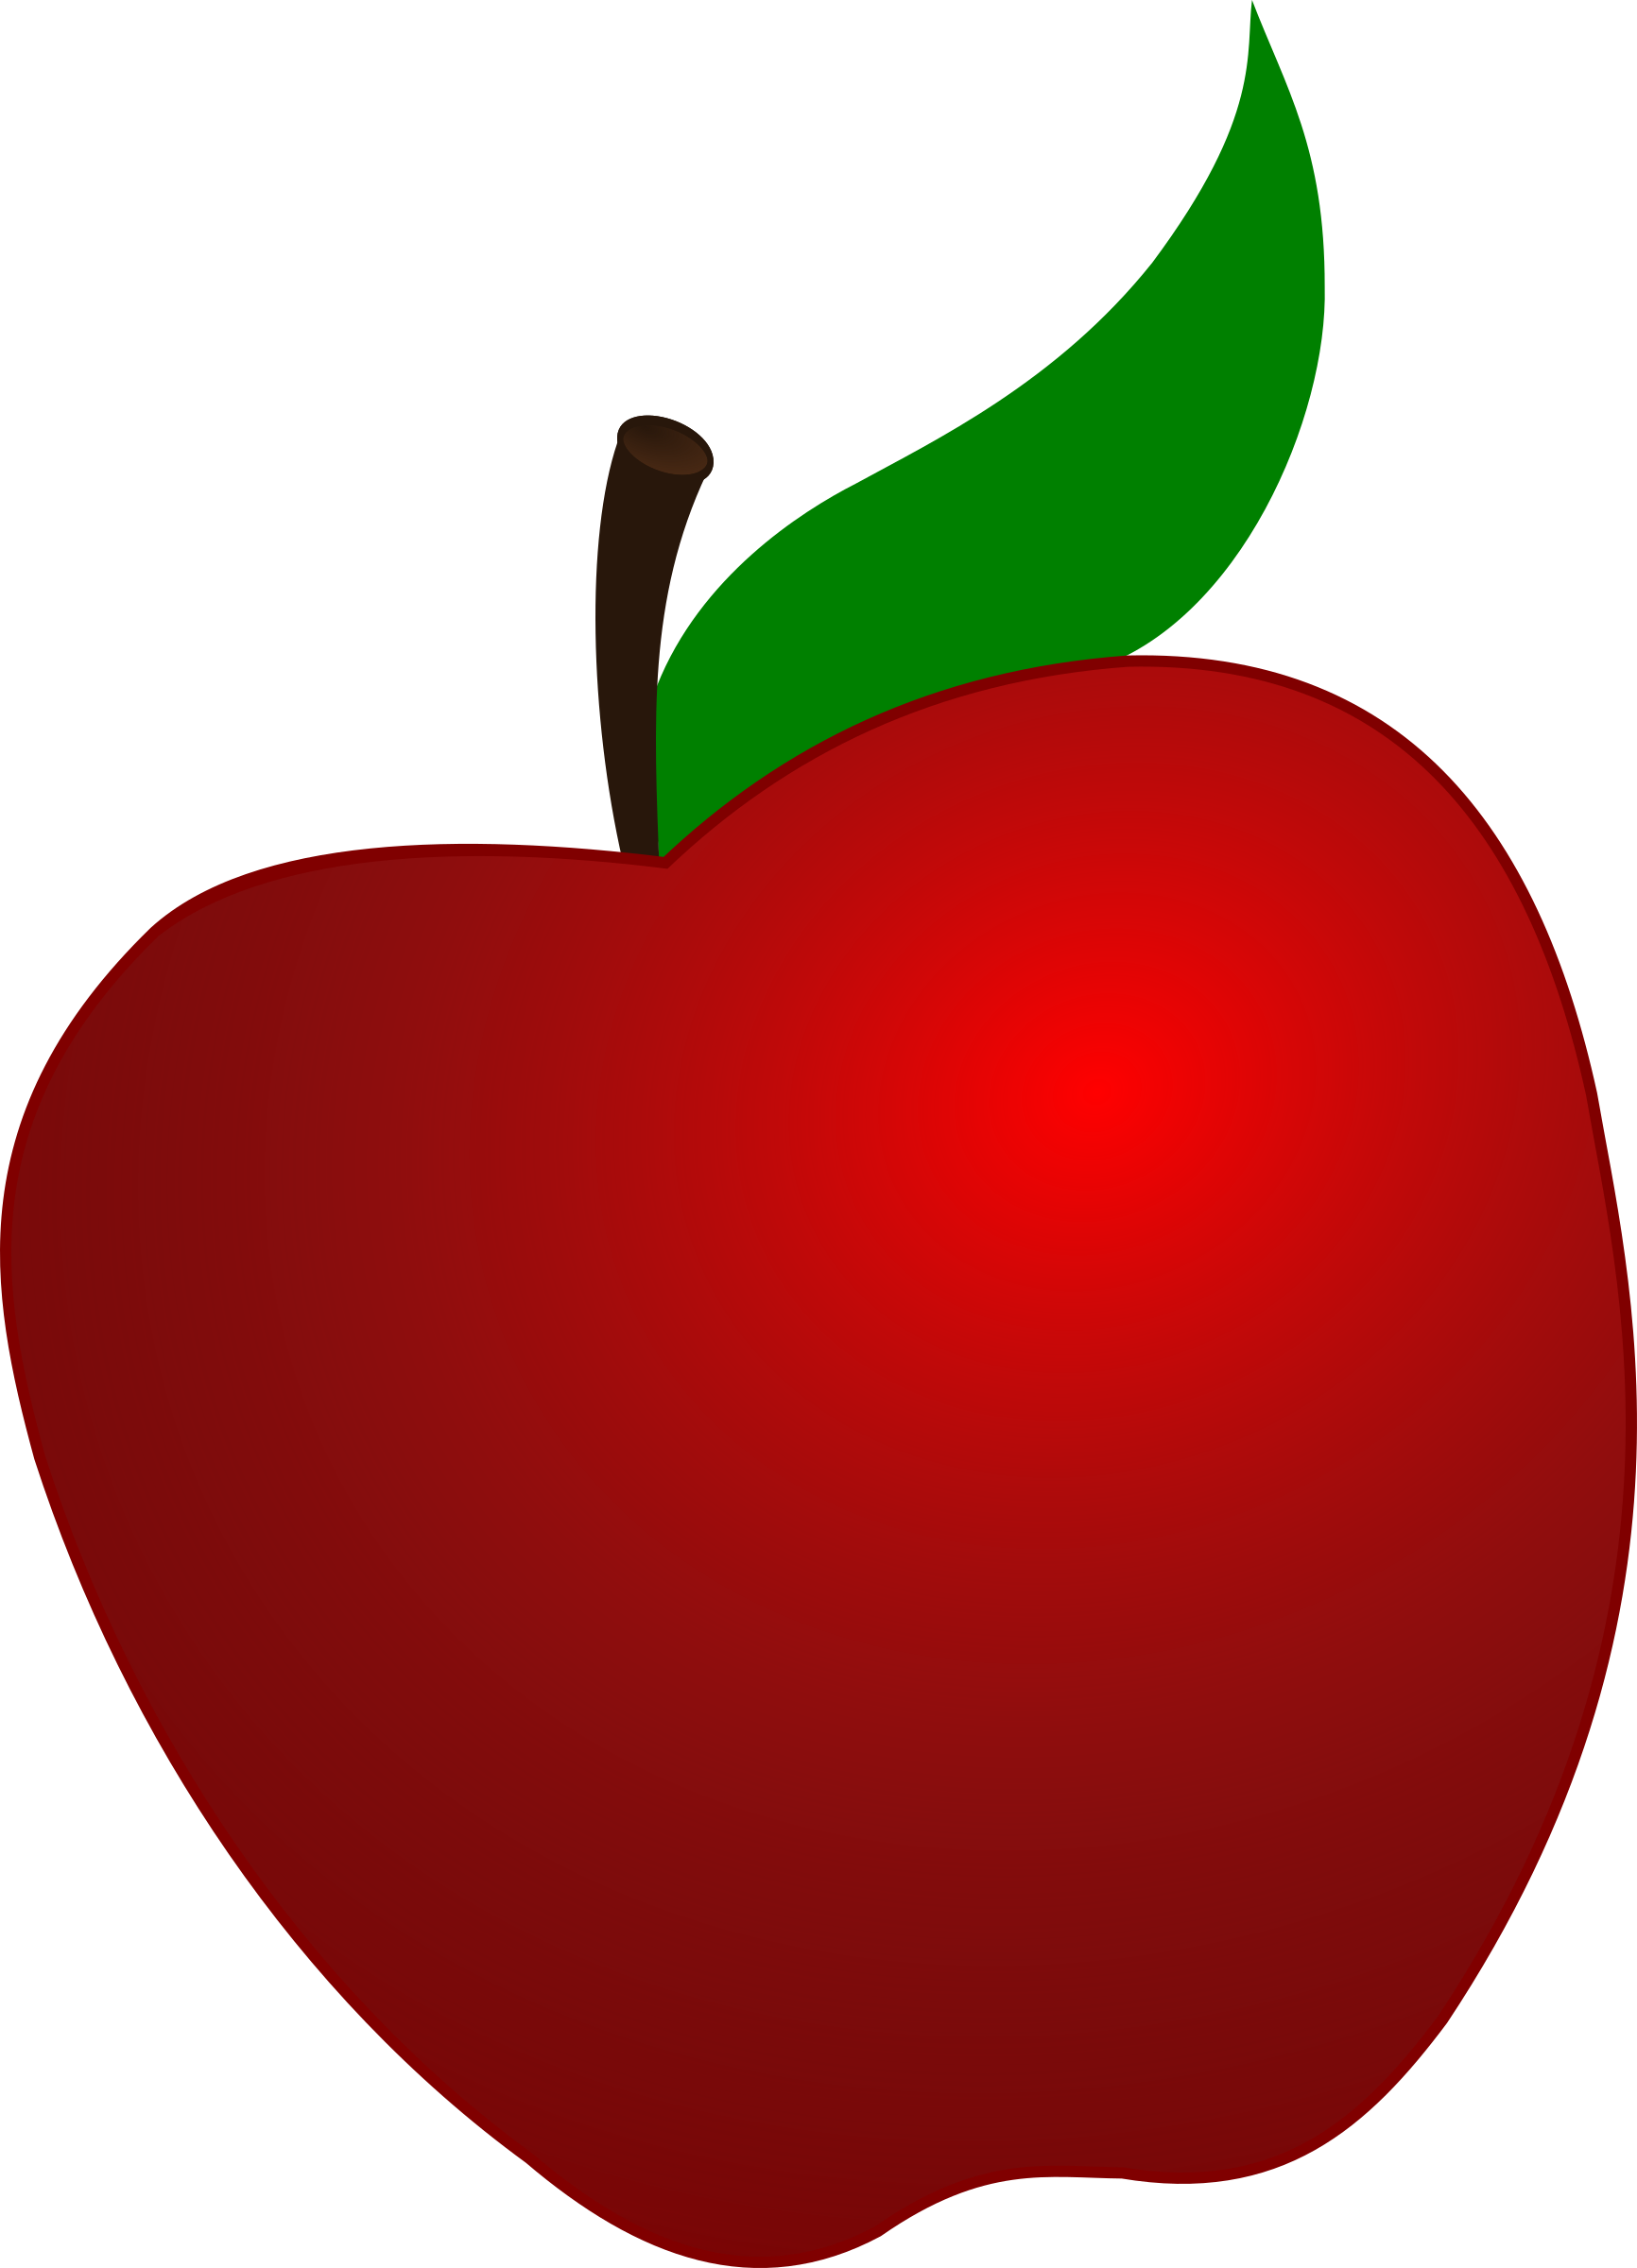 Clipart of apple black and white Clipart - Apple black and white